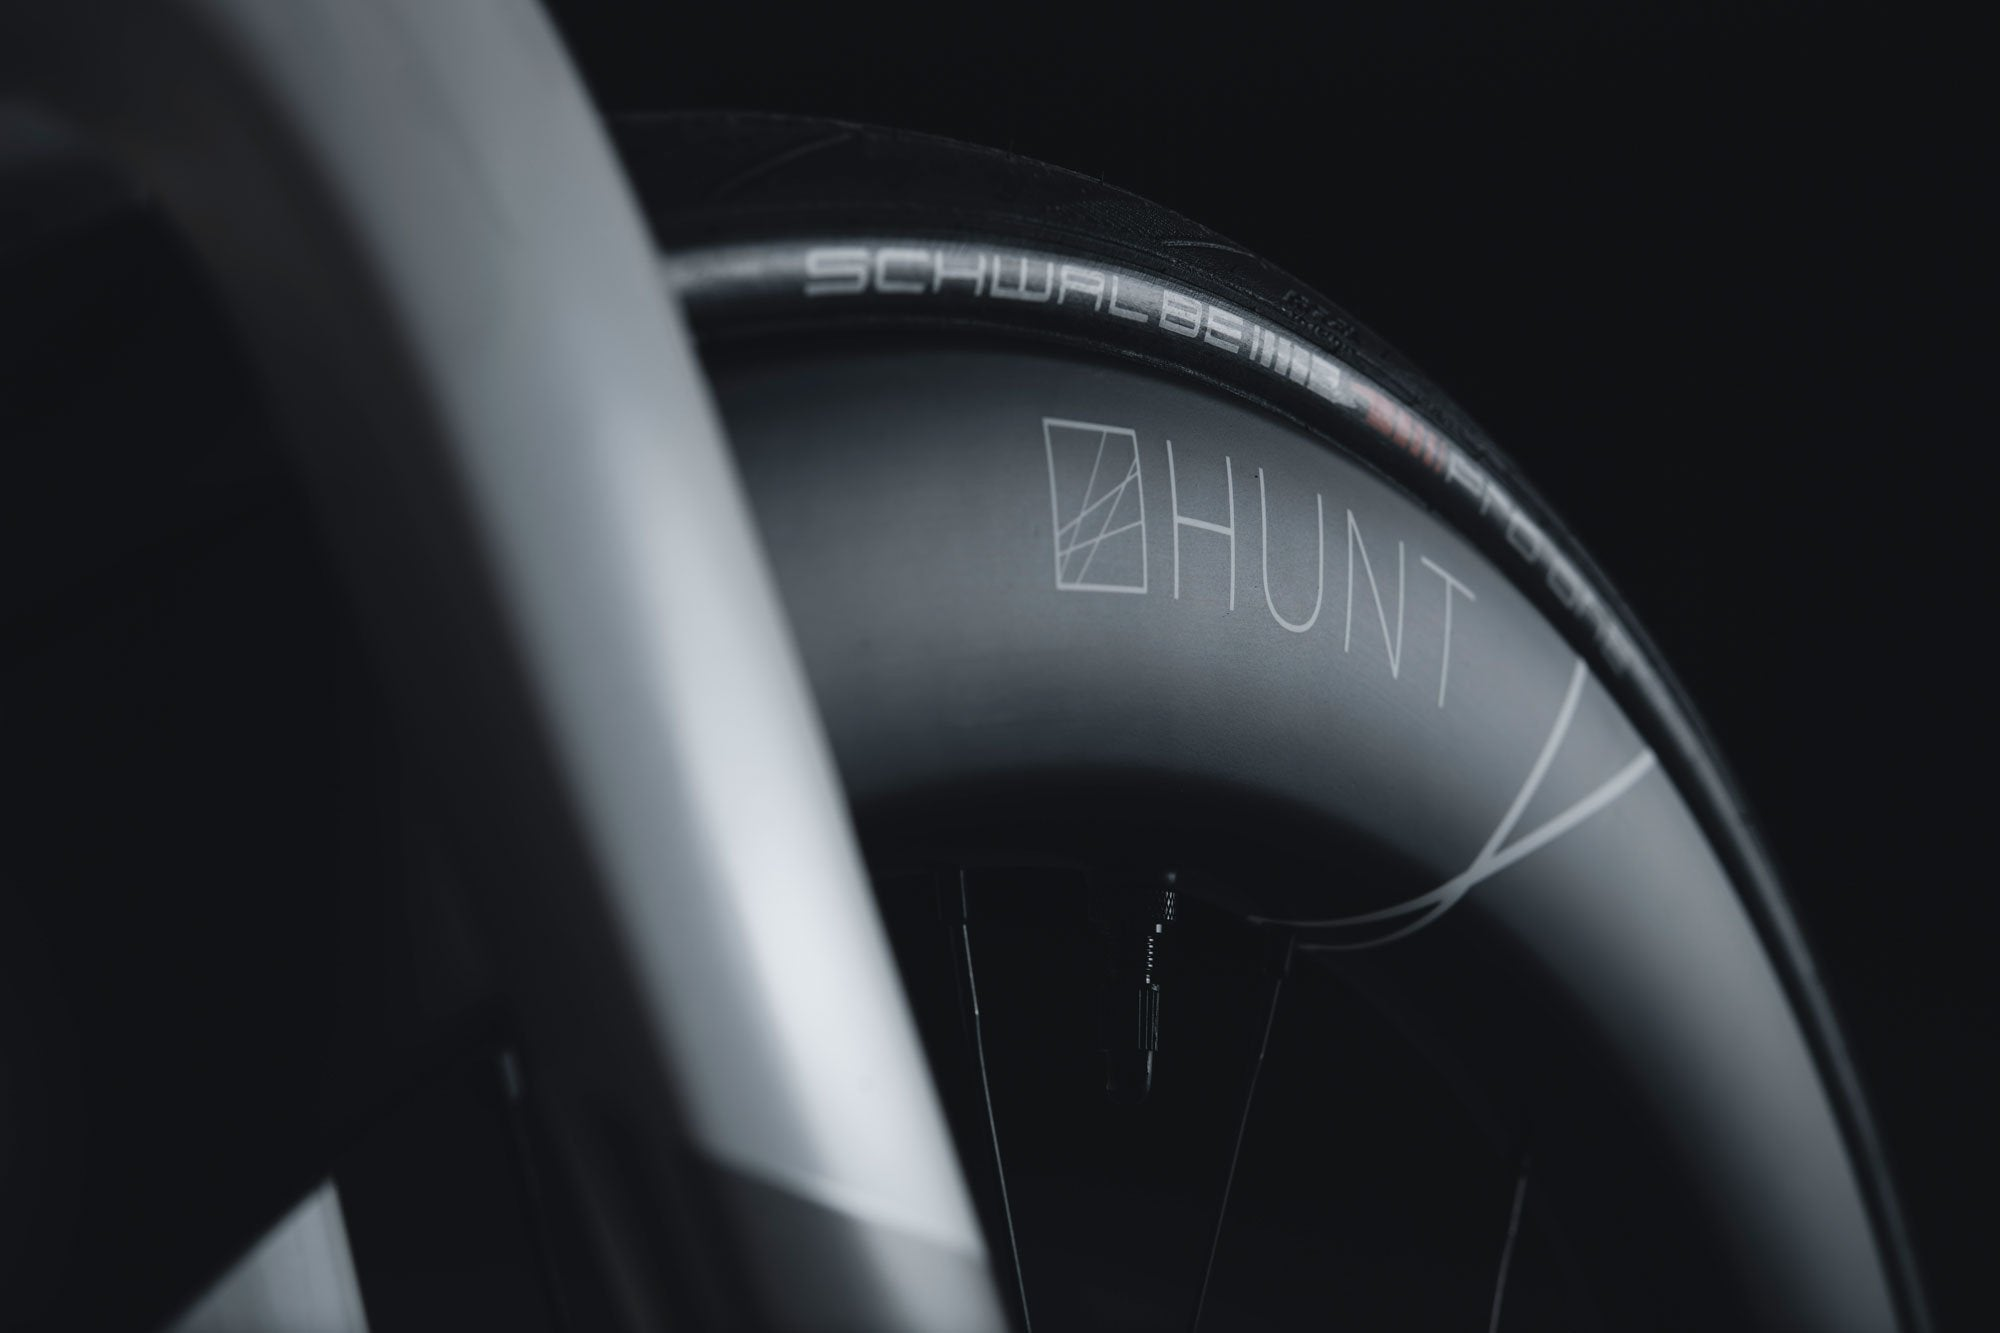 <h1>TIRE COMPATIBILITY</h1><i>Optimised aerodynamically for a Schwalbe Pro One 25-28c, but compatible with any tubeless or clincher tire from 23 up to 45c.</i>